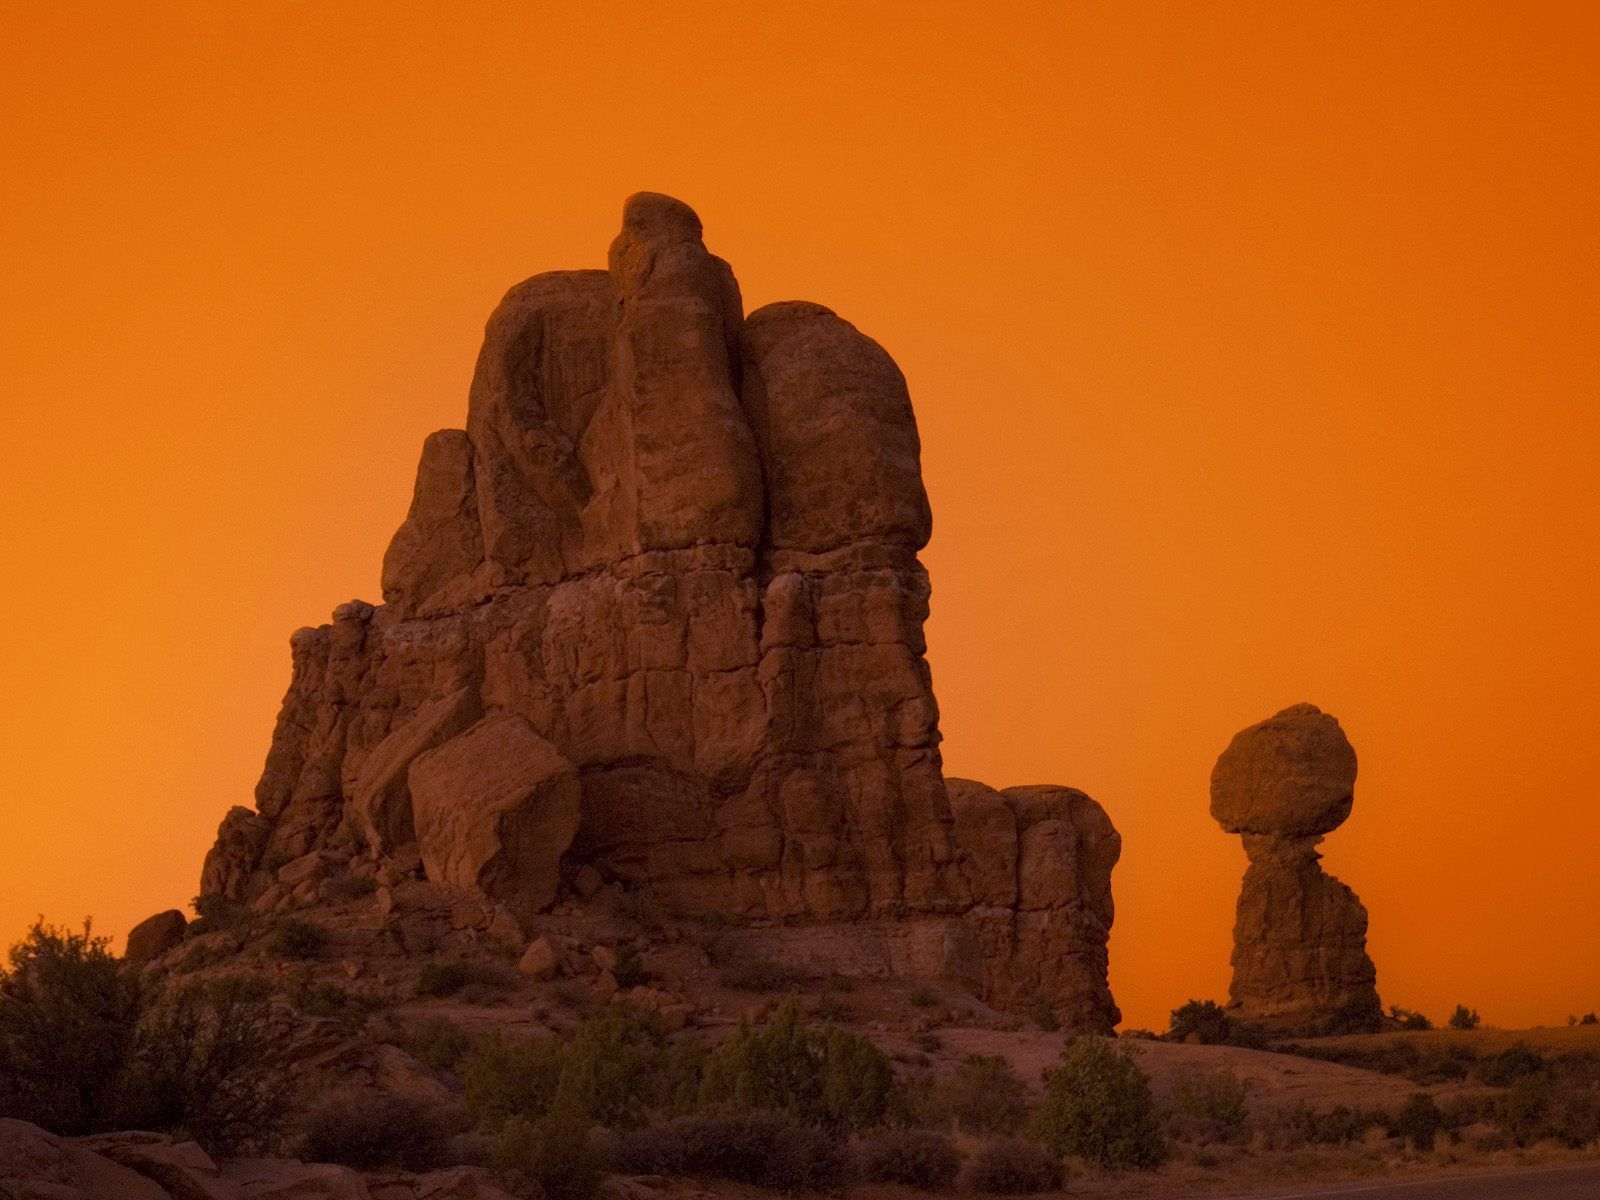 balanced rock arches National HD Wallpaper